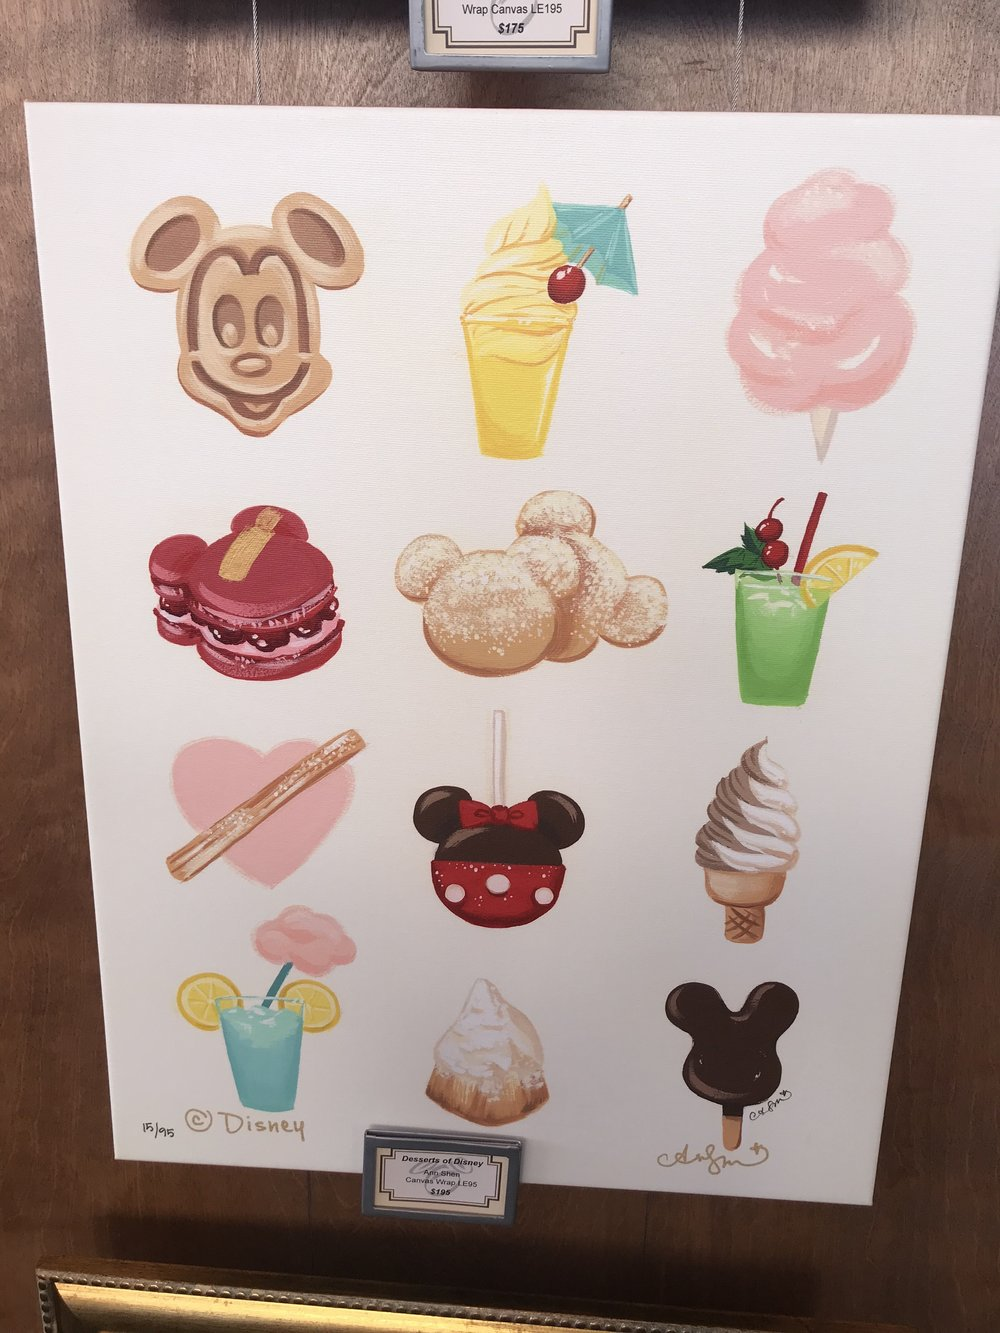 Some Limited Edition art in the artists corner, which is your favorite?  It is so hard to choose!  But DOLE WHIP;)